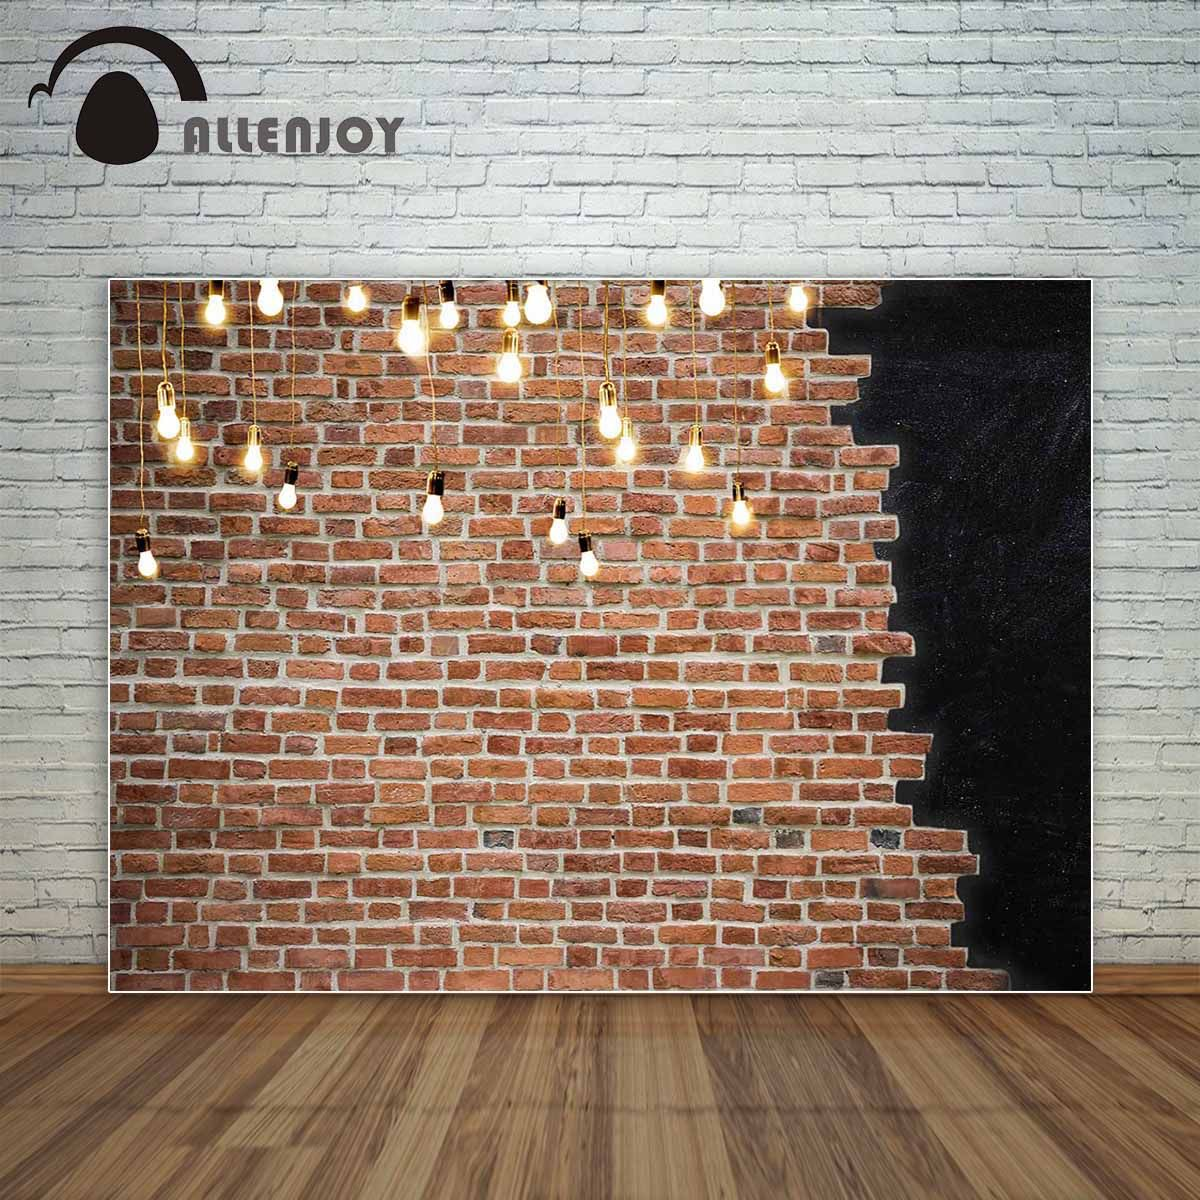 Allenjoy brick wall shiny golden bulbs background vintage fashion backdrop photocall for a photo shoot photo booth